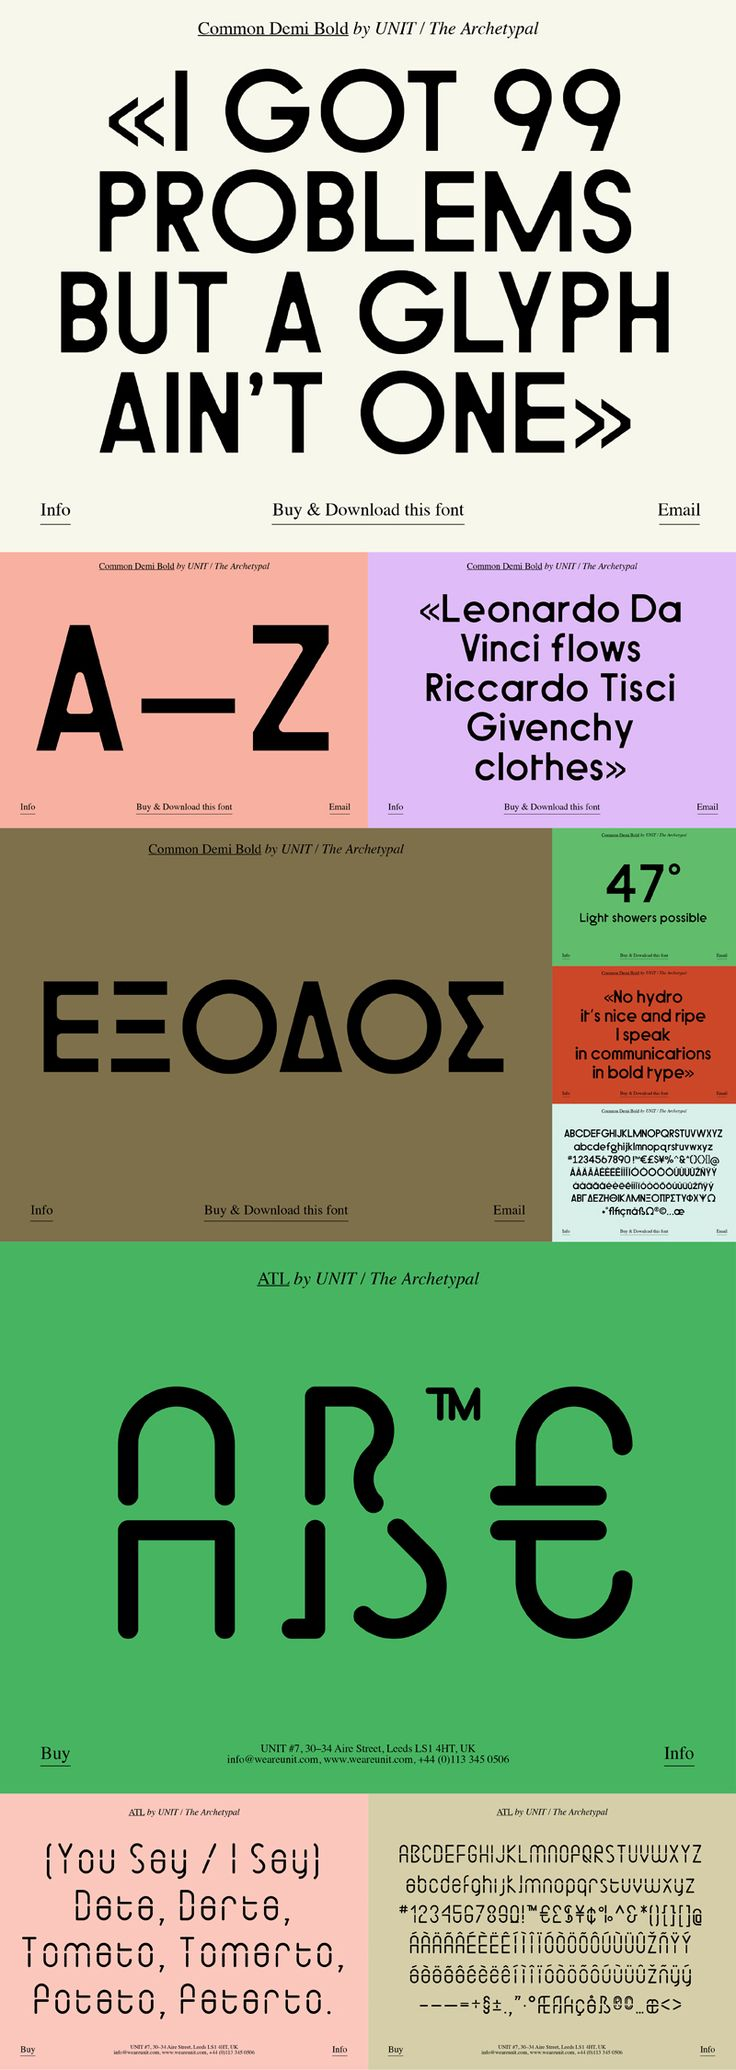 The Archetypal — Various Typefaces